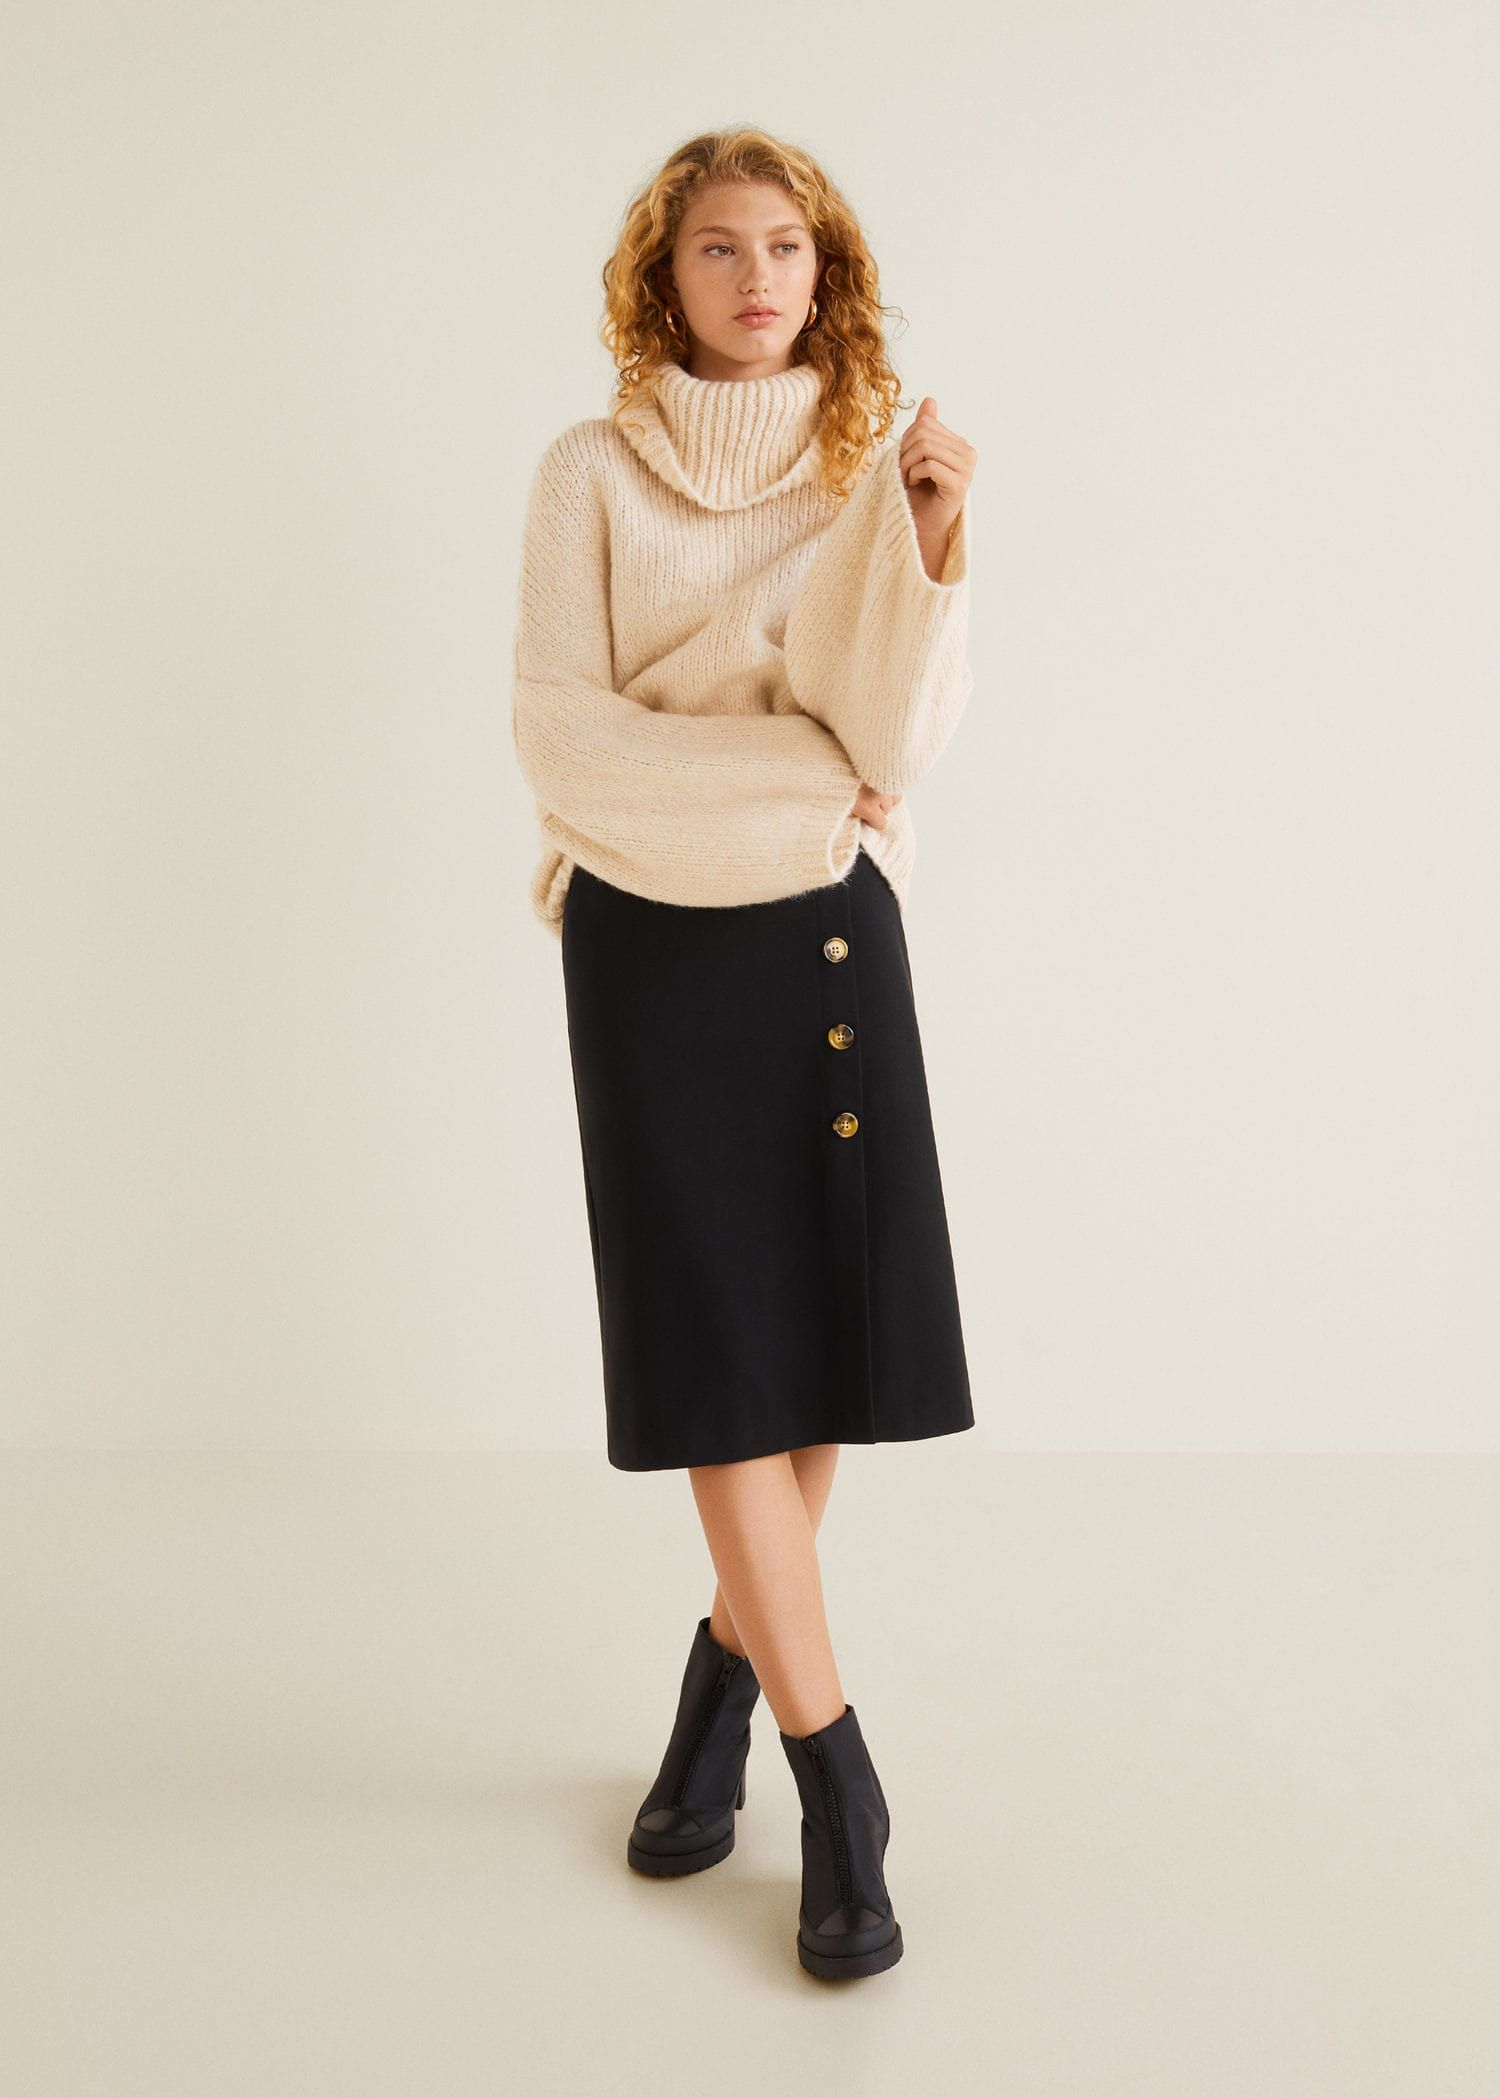 35f5f5afd0 Buttoned midi skirt - Women | Get in my Closet | Pinterest | Skirts ...